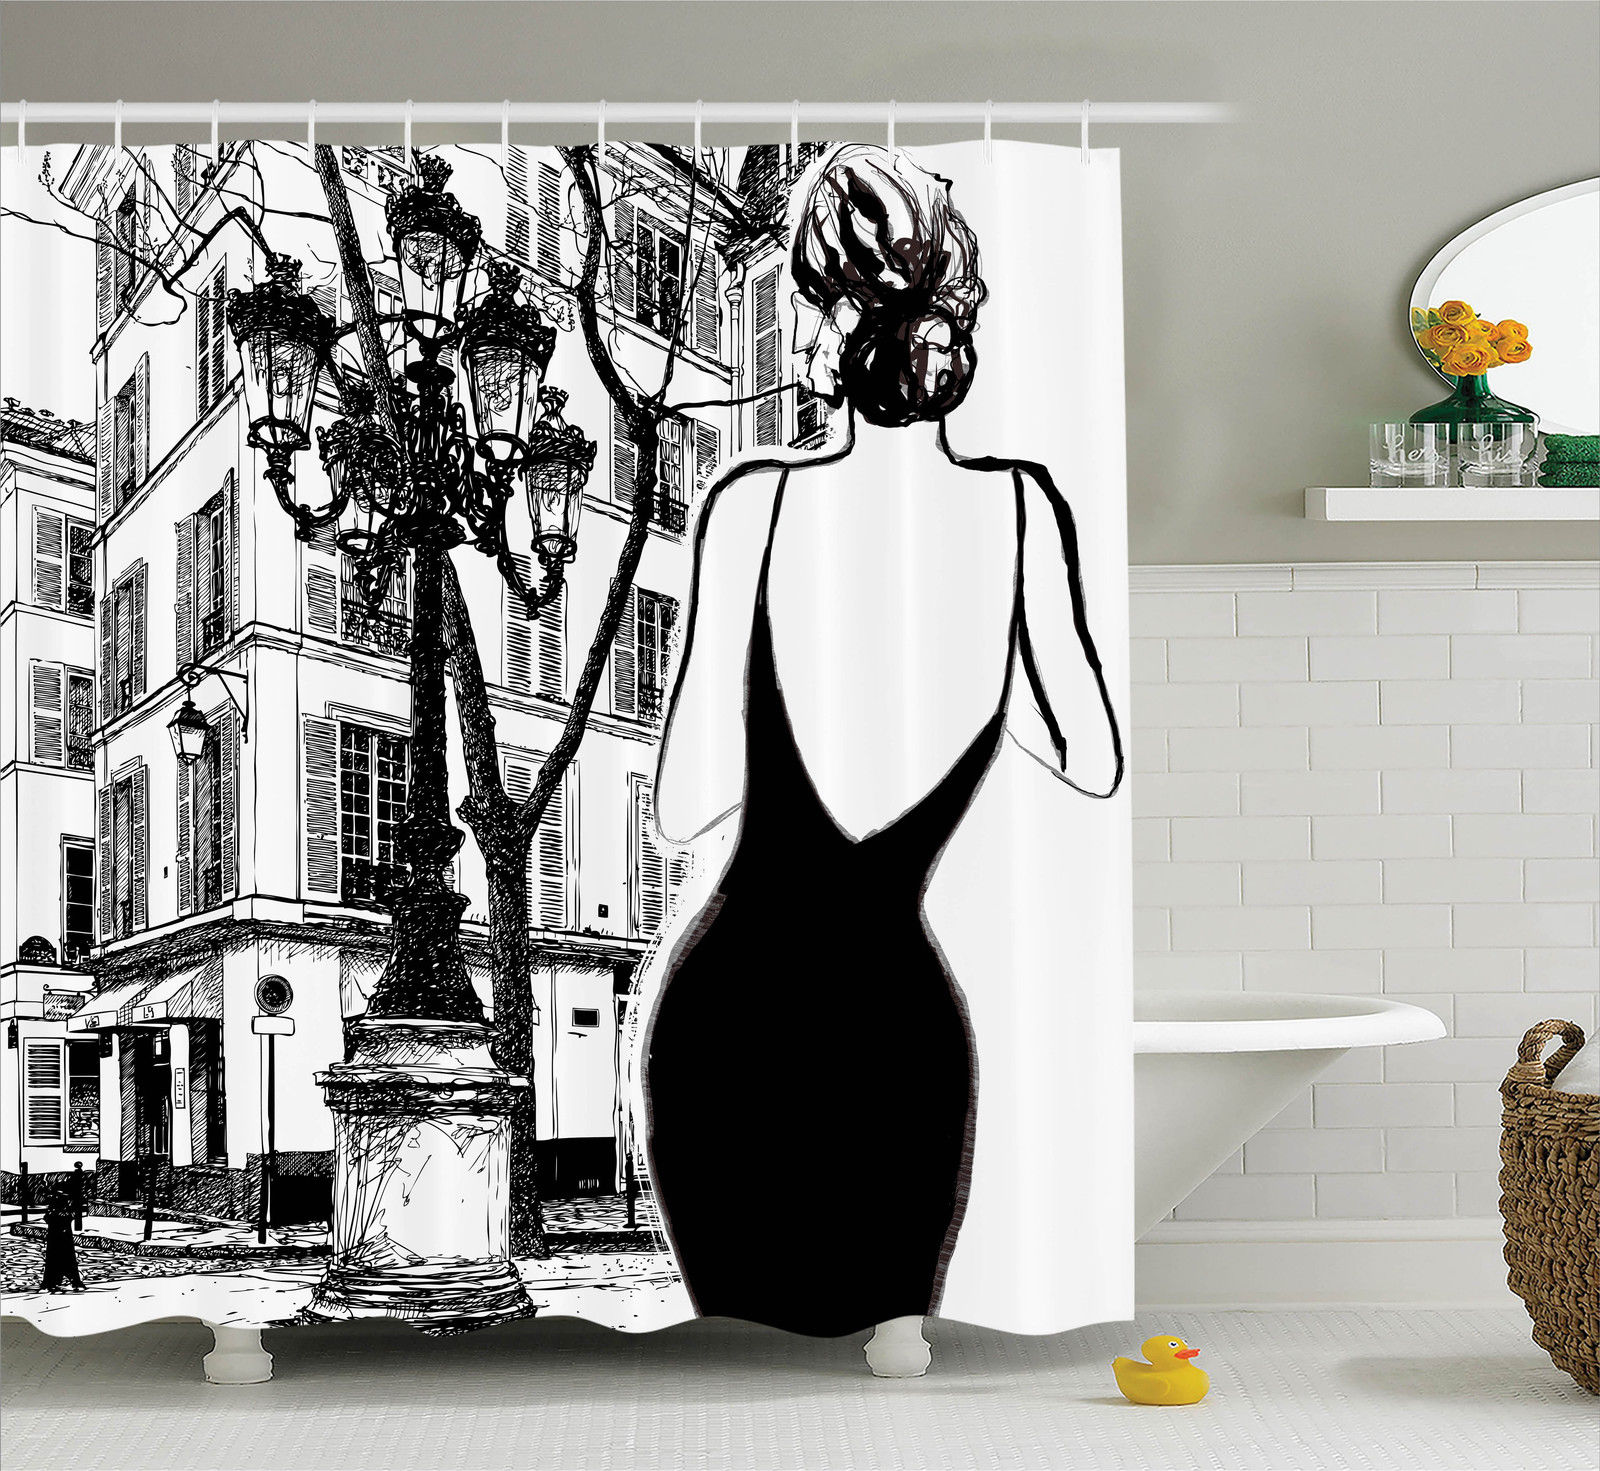 Paris City Decor Shower Curtain Set, Young Elegant Woman In A Black Dress In Paris Street Old Building Facade Cityscape, Bathroom Accessories, 69W X 70L Inches, By Ambesonne